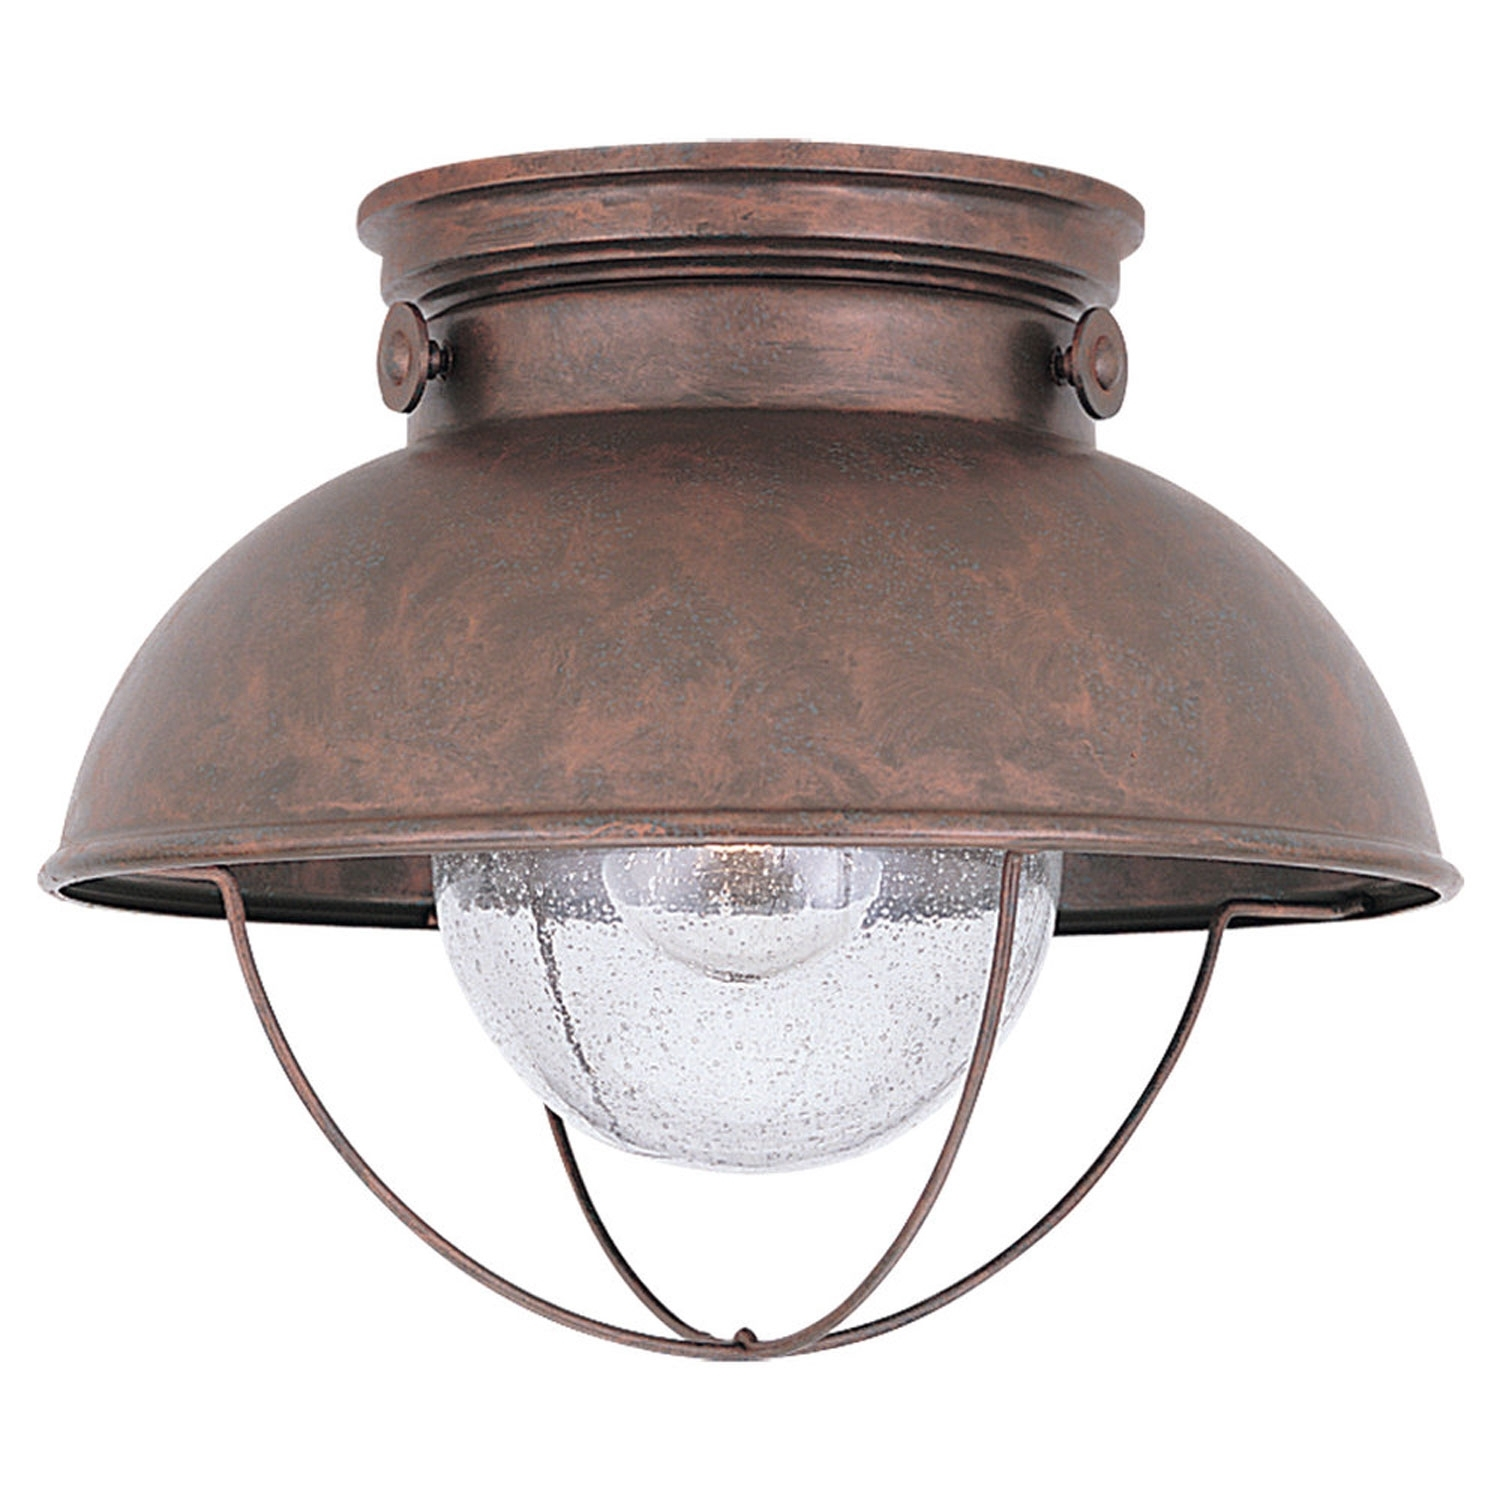 Sea Gull Lighting Sebring Weathered Copper Outdoor Ceiling Light With Regard To Outdoor Ceiling Mounted Lights (#10 of 15)